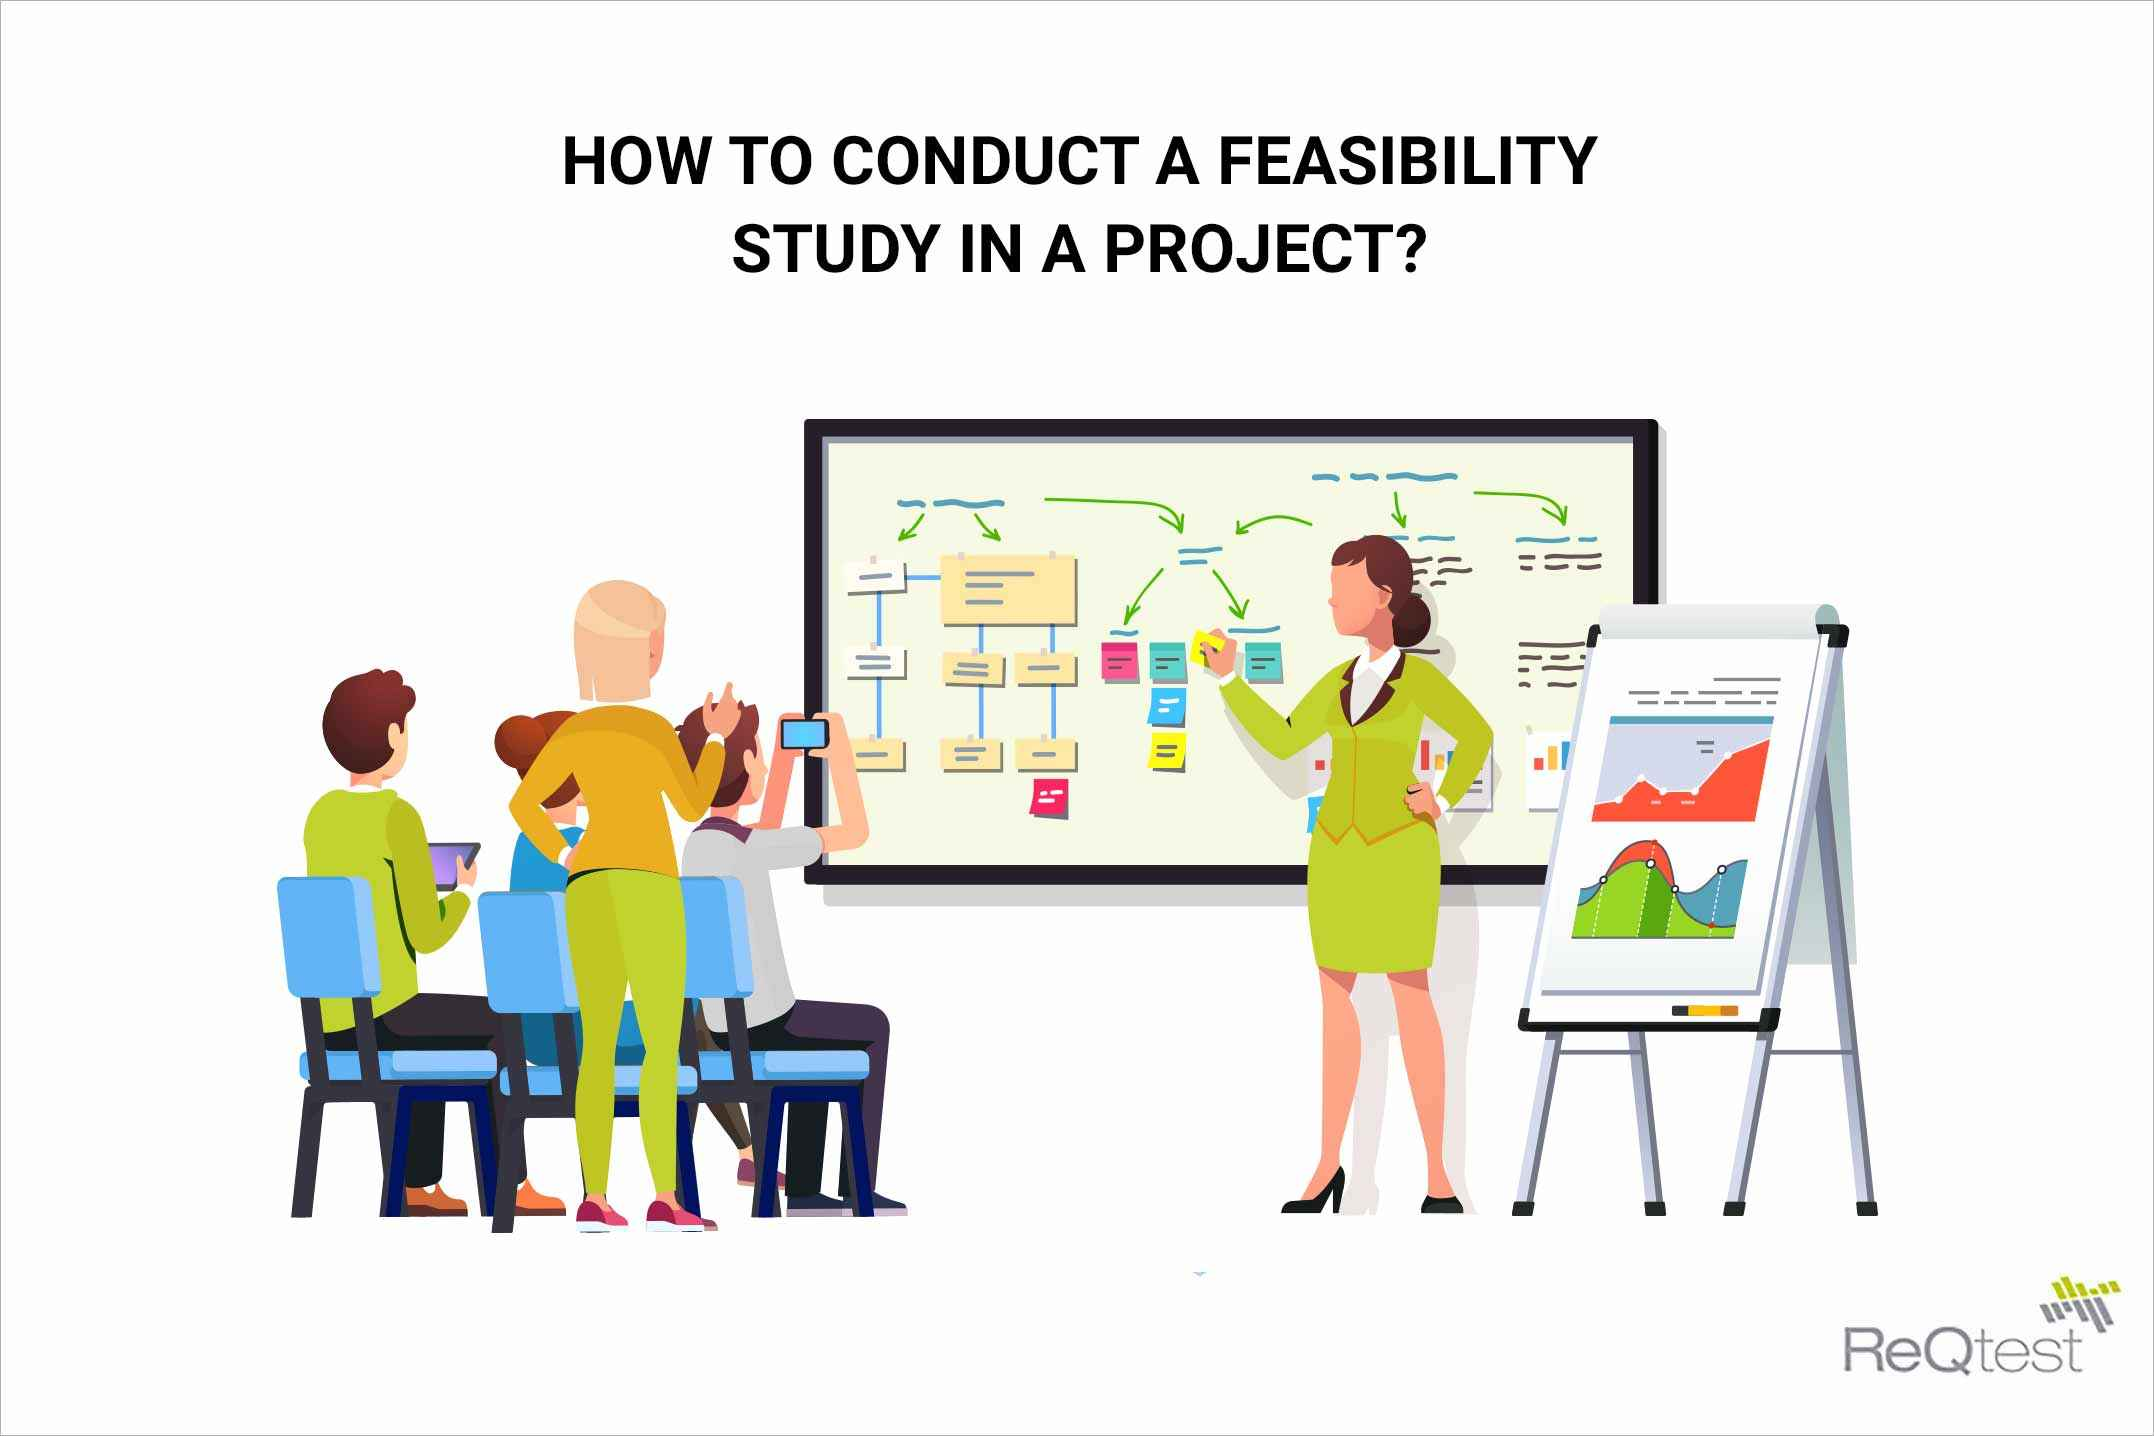 Fesbility study in project